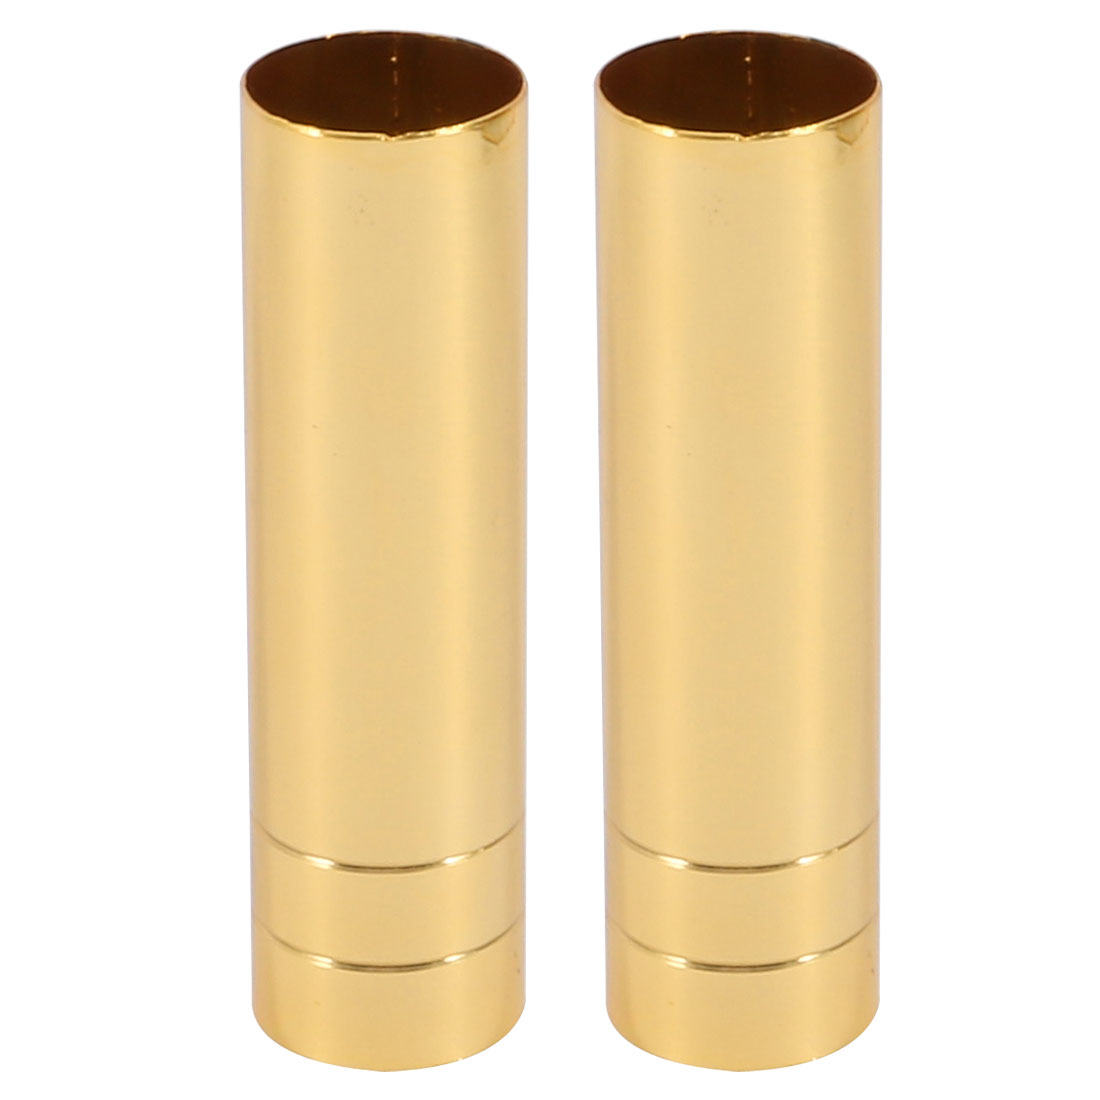 2pcs 25mmx80mm Gold Tone Metal Candle Cover Sleeves Chandelier Socket Covers